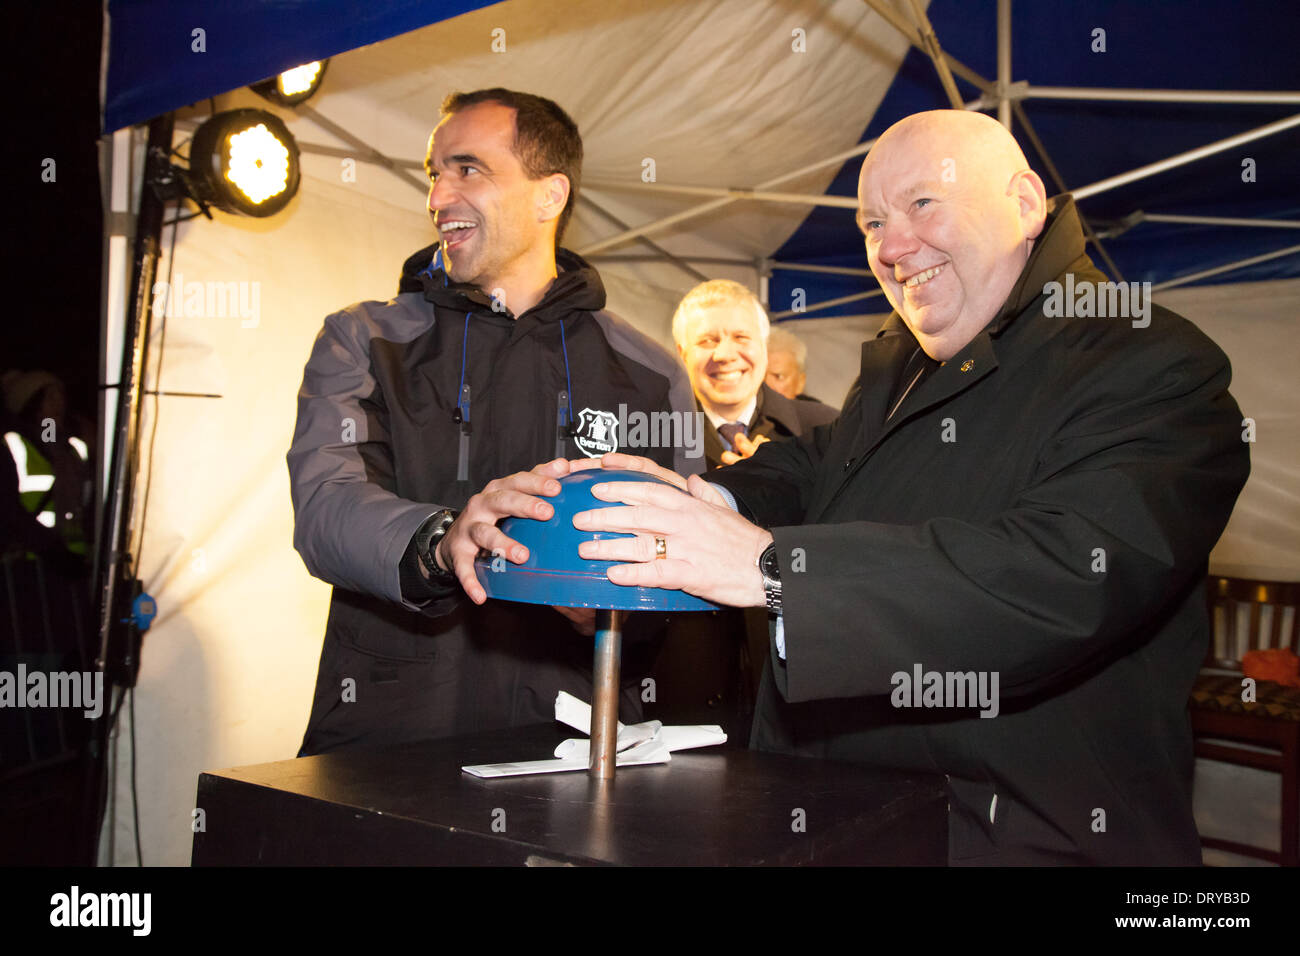 Liverpool, UK. 4th February 2014. Everton manager Roberto Martinez and Liverpool Mayor Joe Anderson switch on a new Everton crest projection in Liverpool. The crest was projected onto Everton lock up, which is featured on the Everton crest Credit:  Adam Vaughan/Alamy Live News - Stock Image